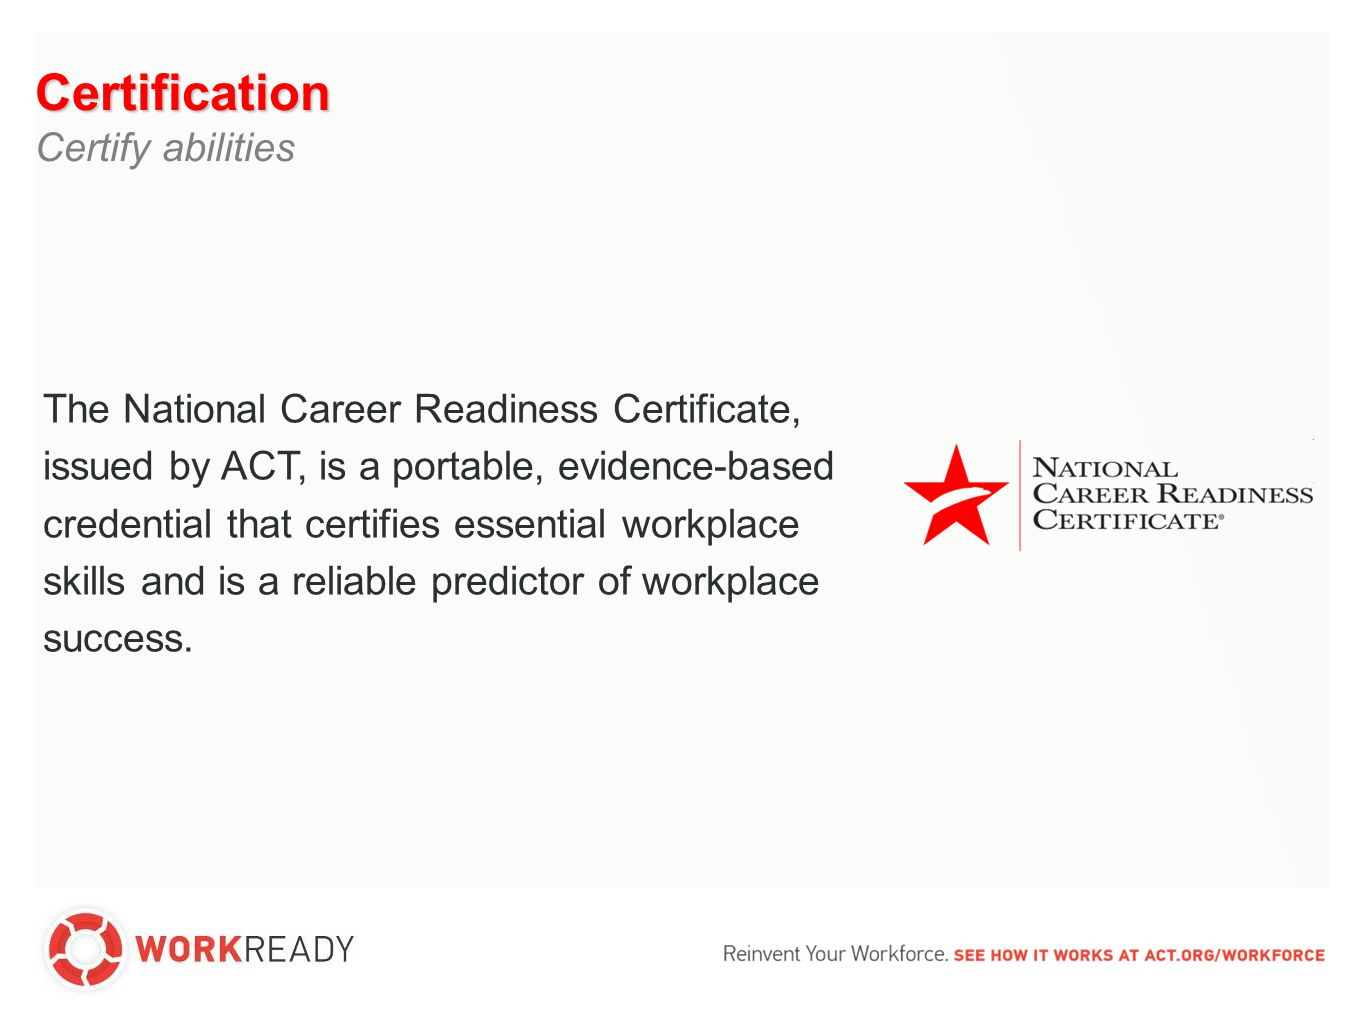 Evidence-based Industry-recognized Portable Used to document essential skills linked to workplace success Awarded at four levels: Bronze, Silver, Gold, Platinum credential The NCRC™ is a credential that is: Certification Certify abilities